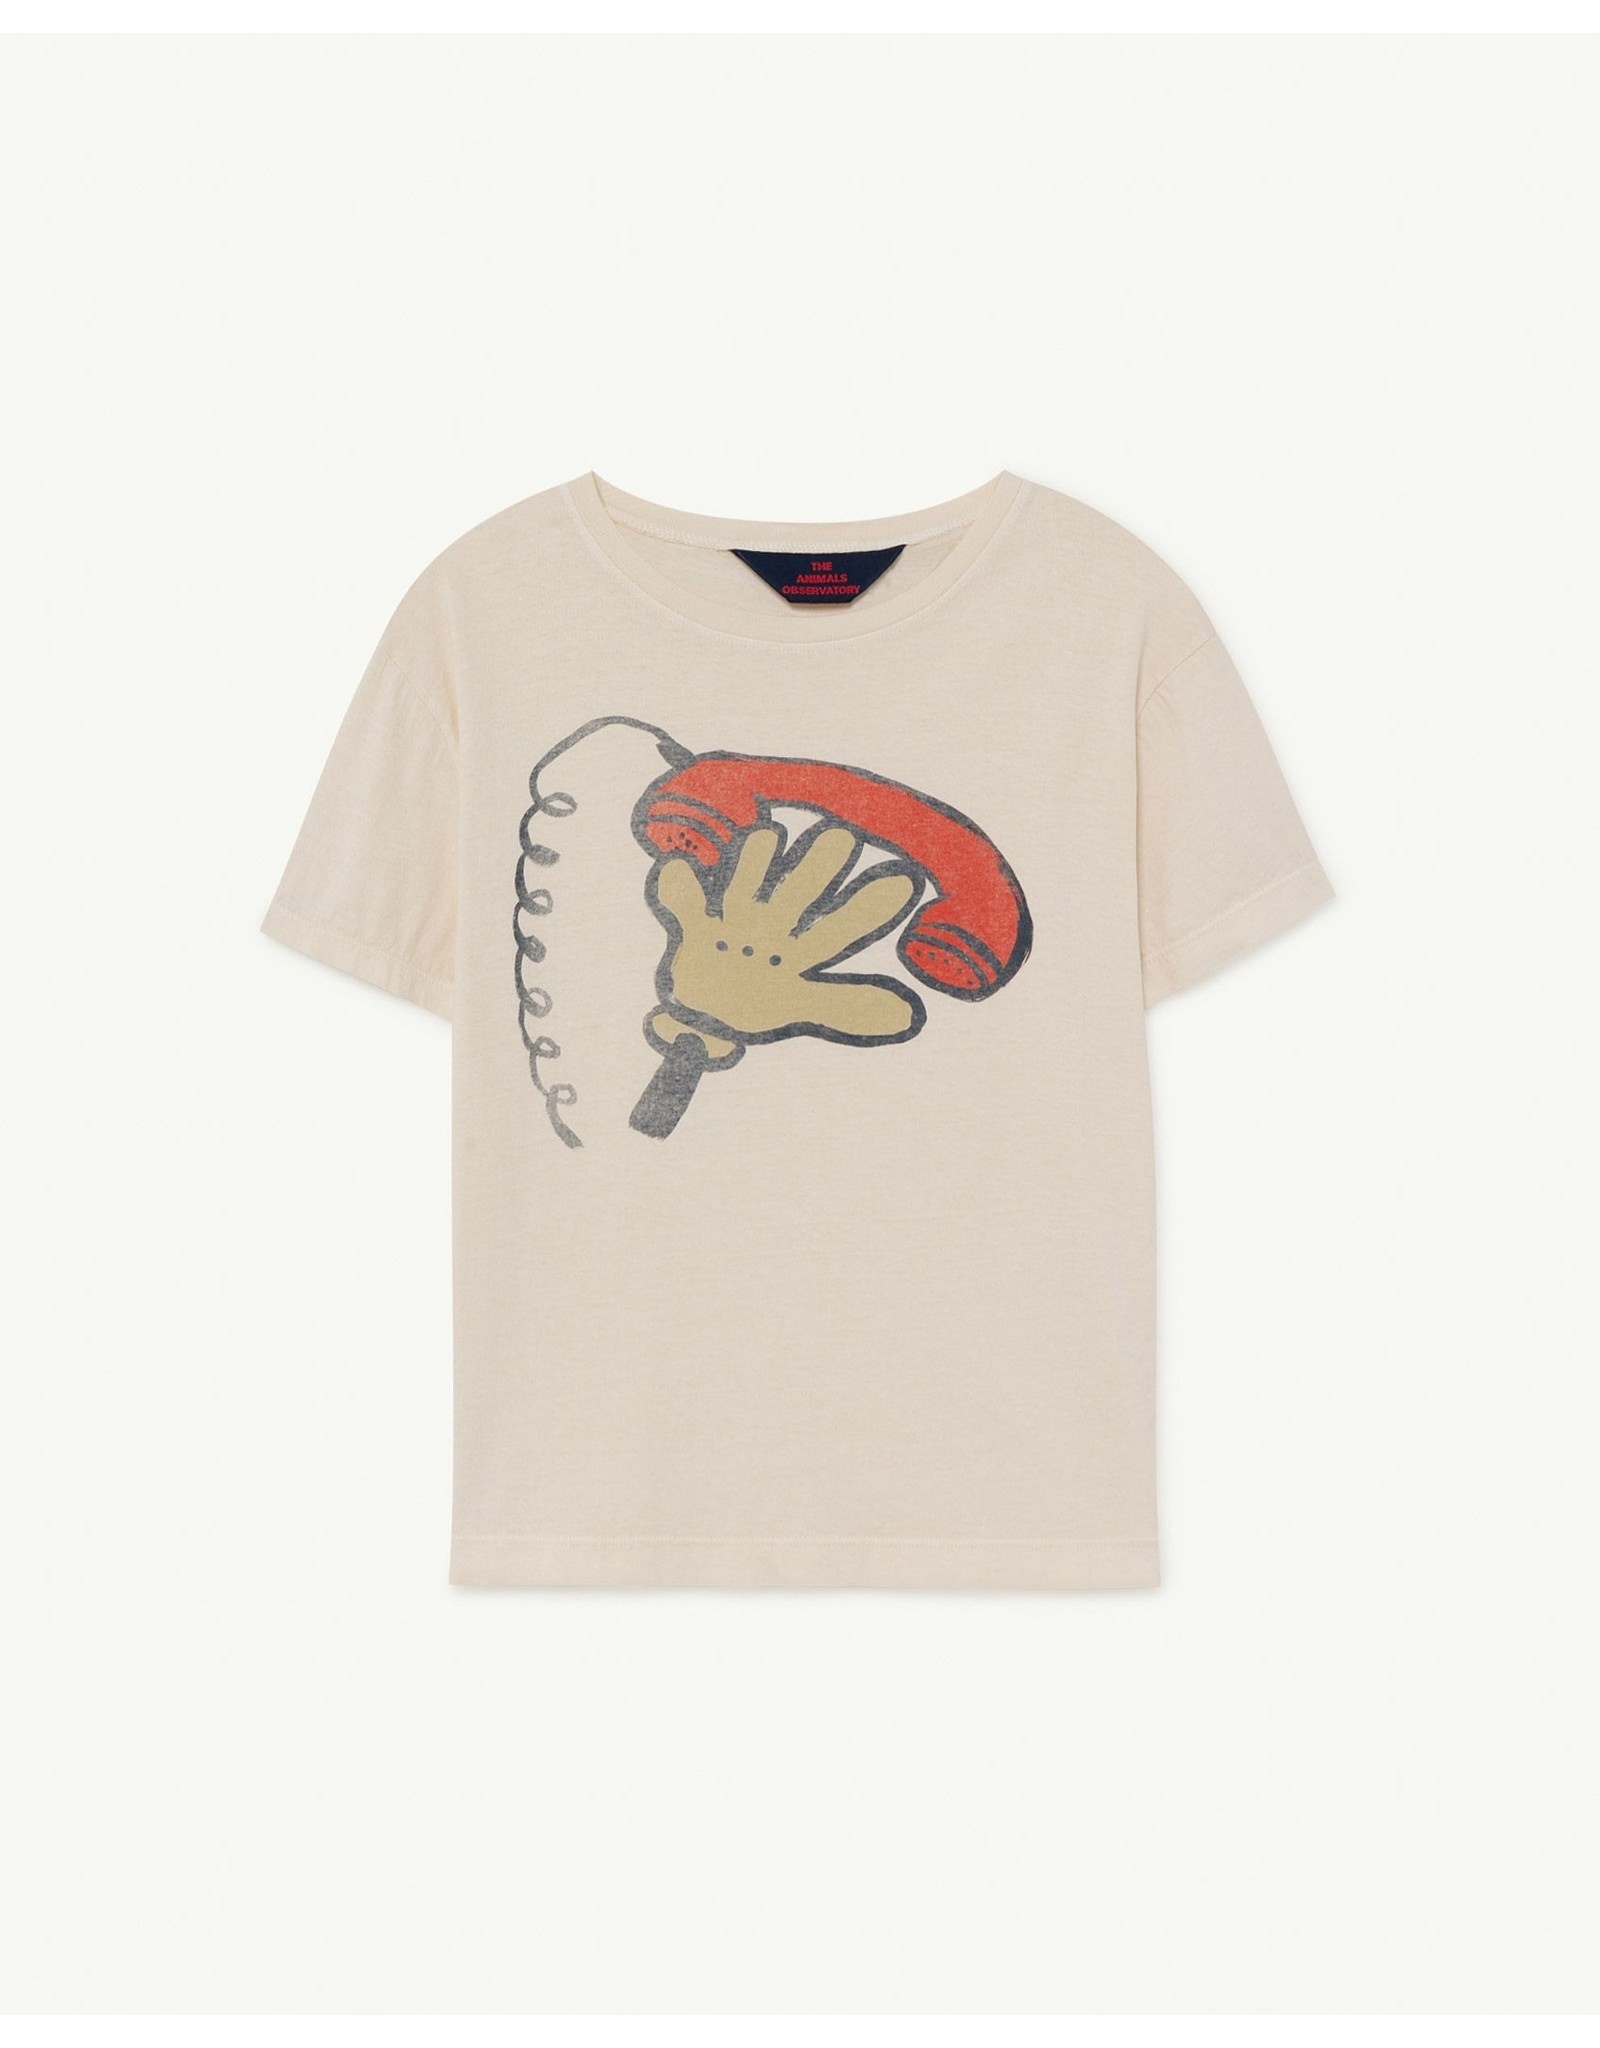 The Animal Observatory TAO SS21001 Rooster T-shirt